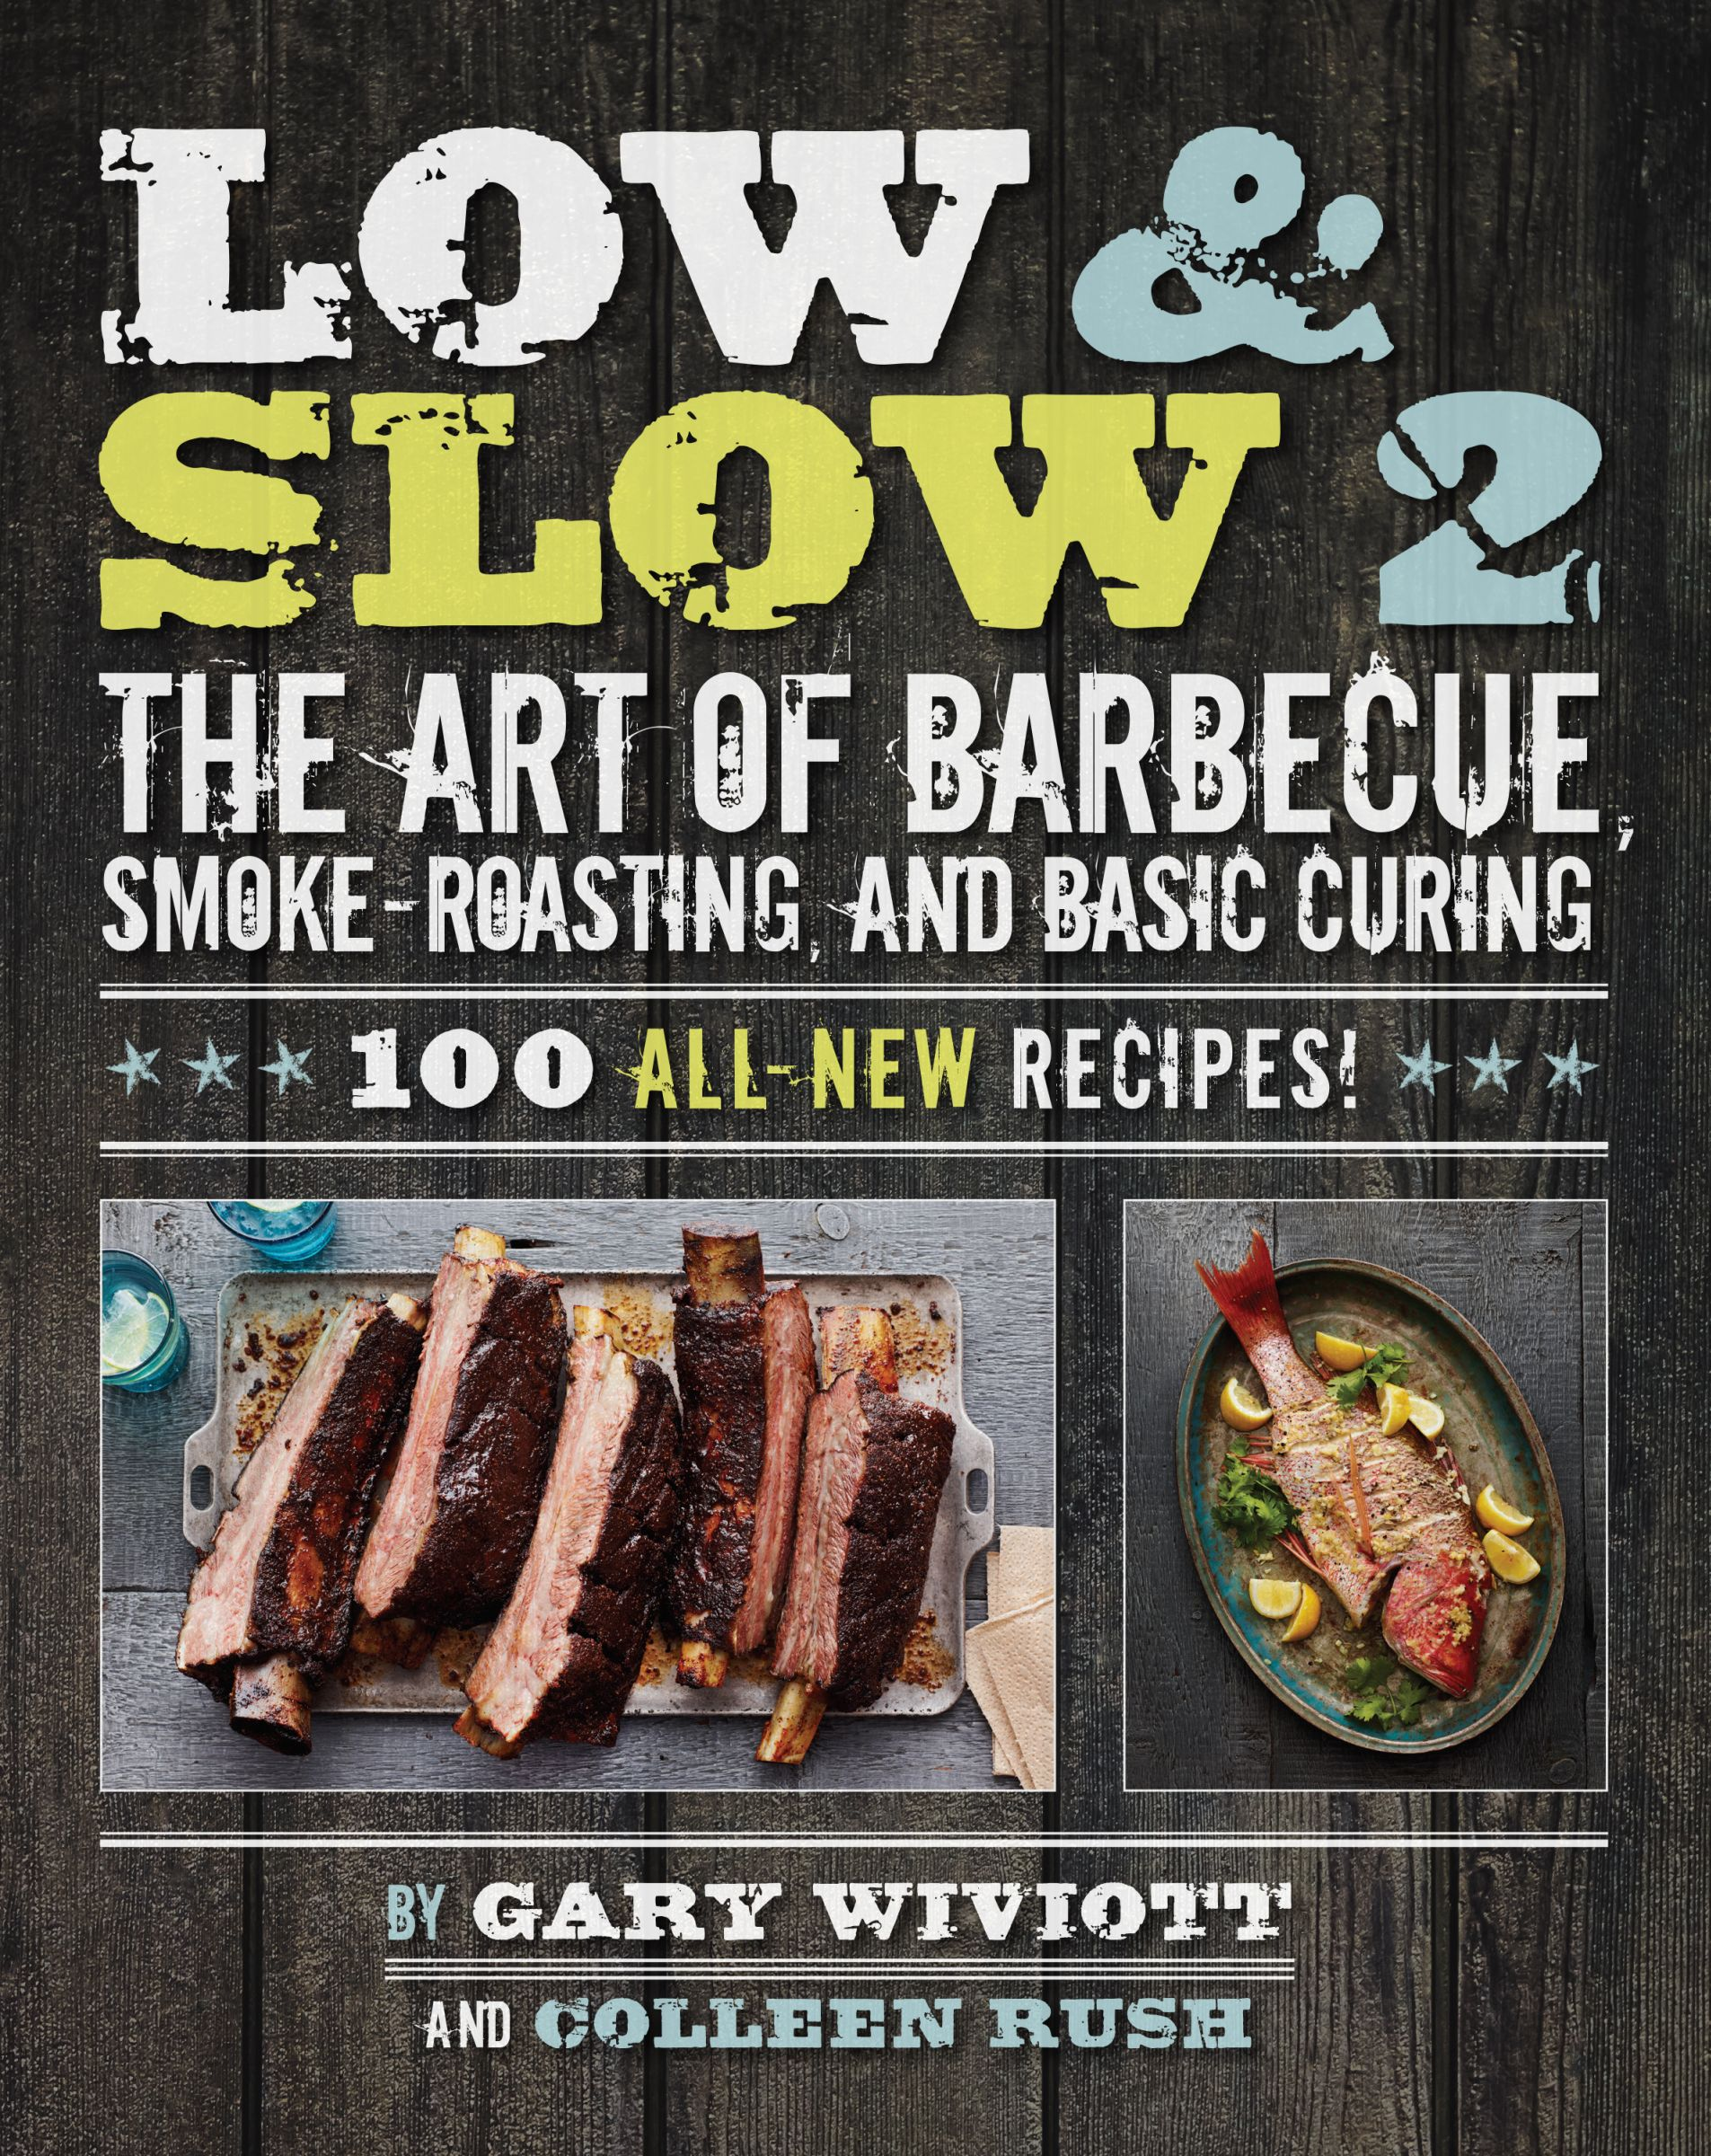 Low & Slow 2 The Art of Barbecue, Smoke-Roasting, and Basic Curing